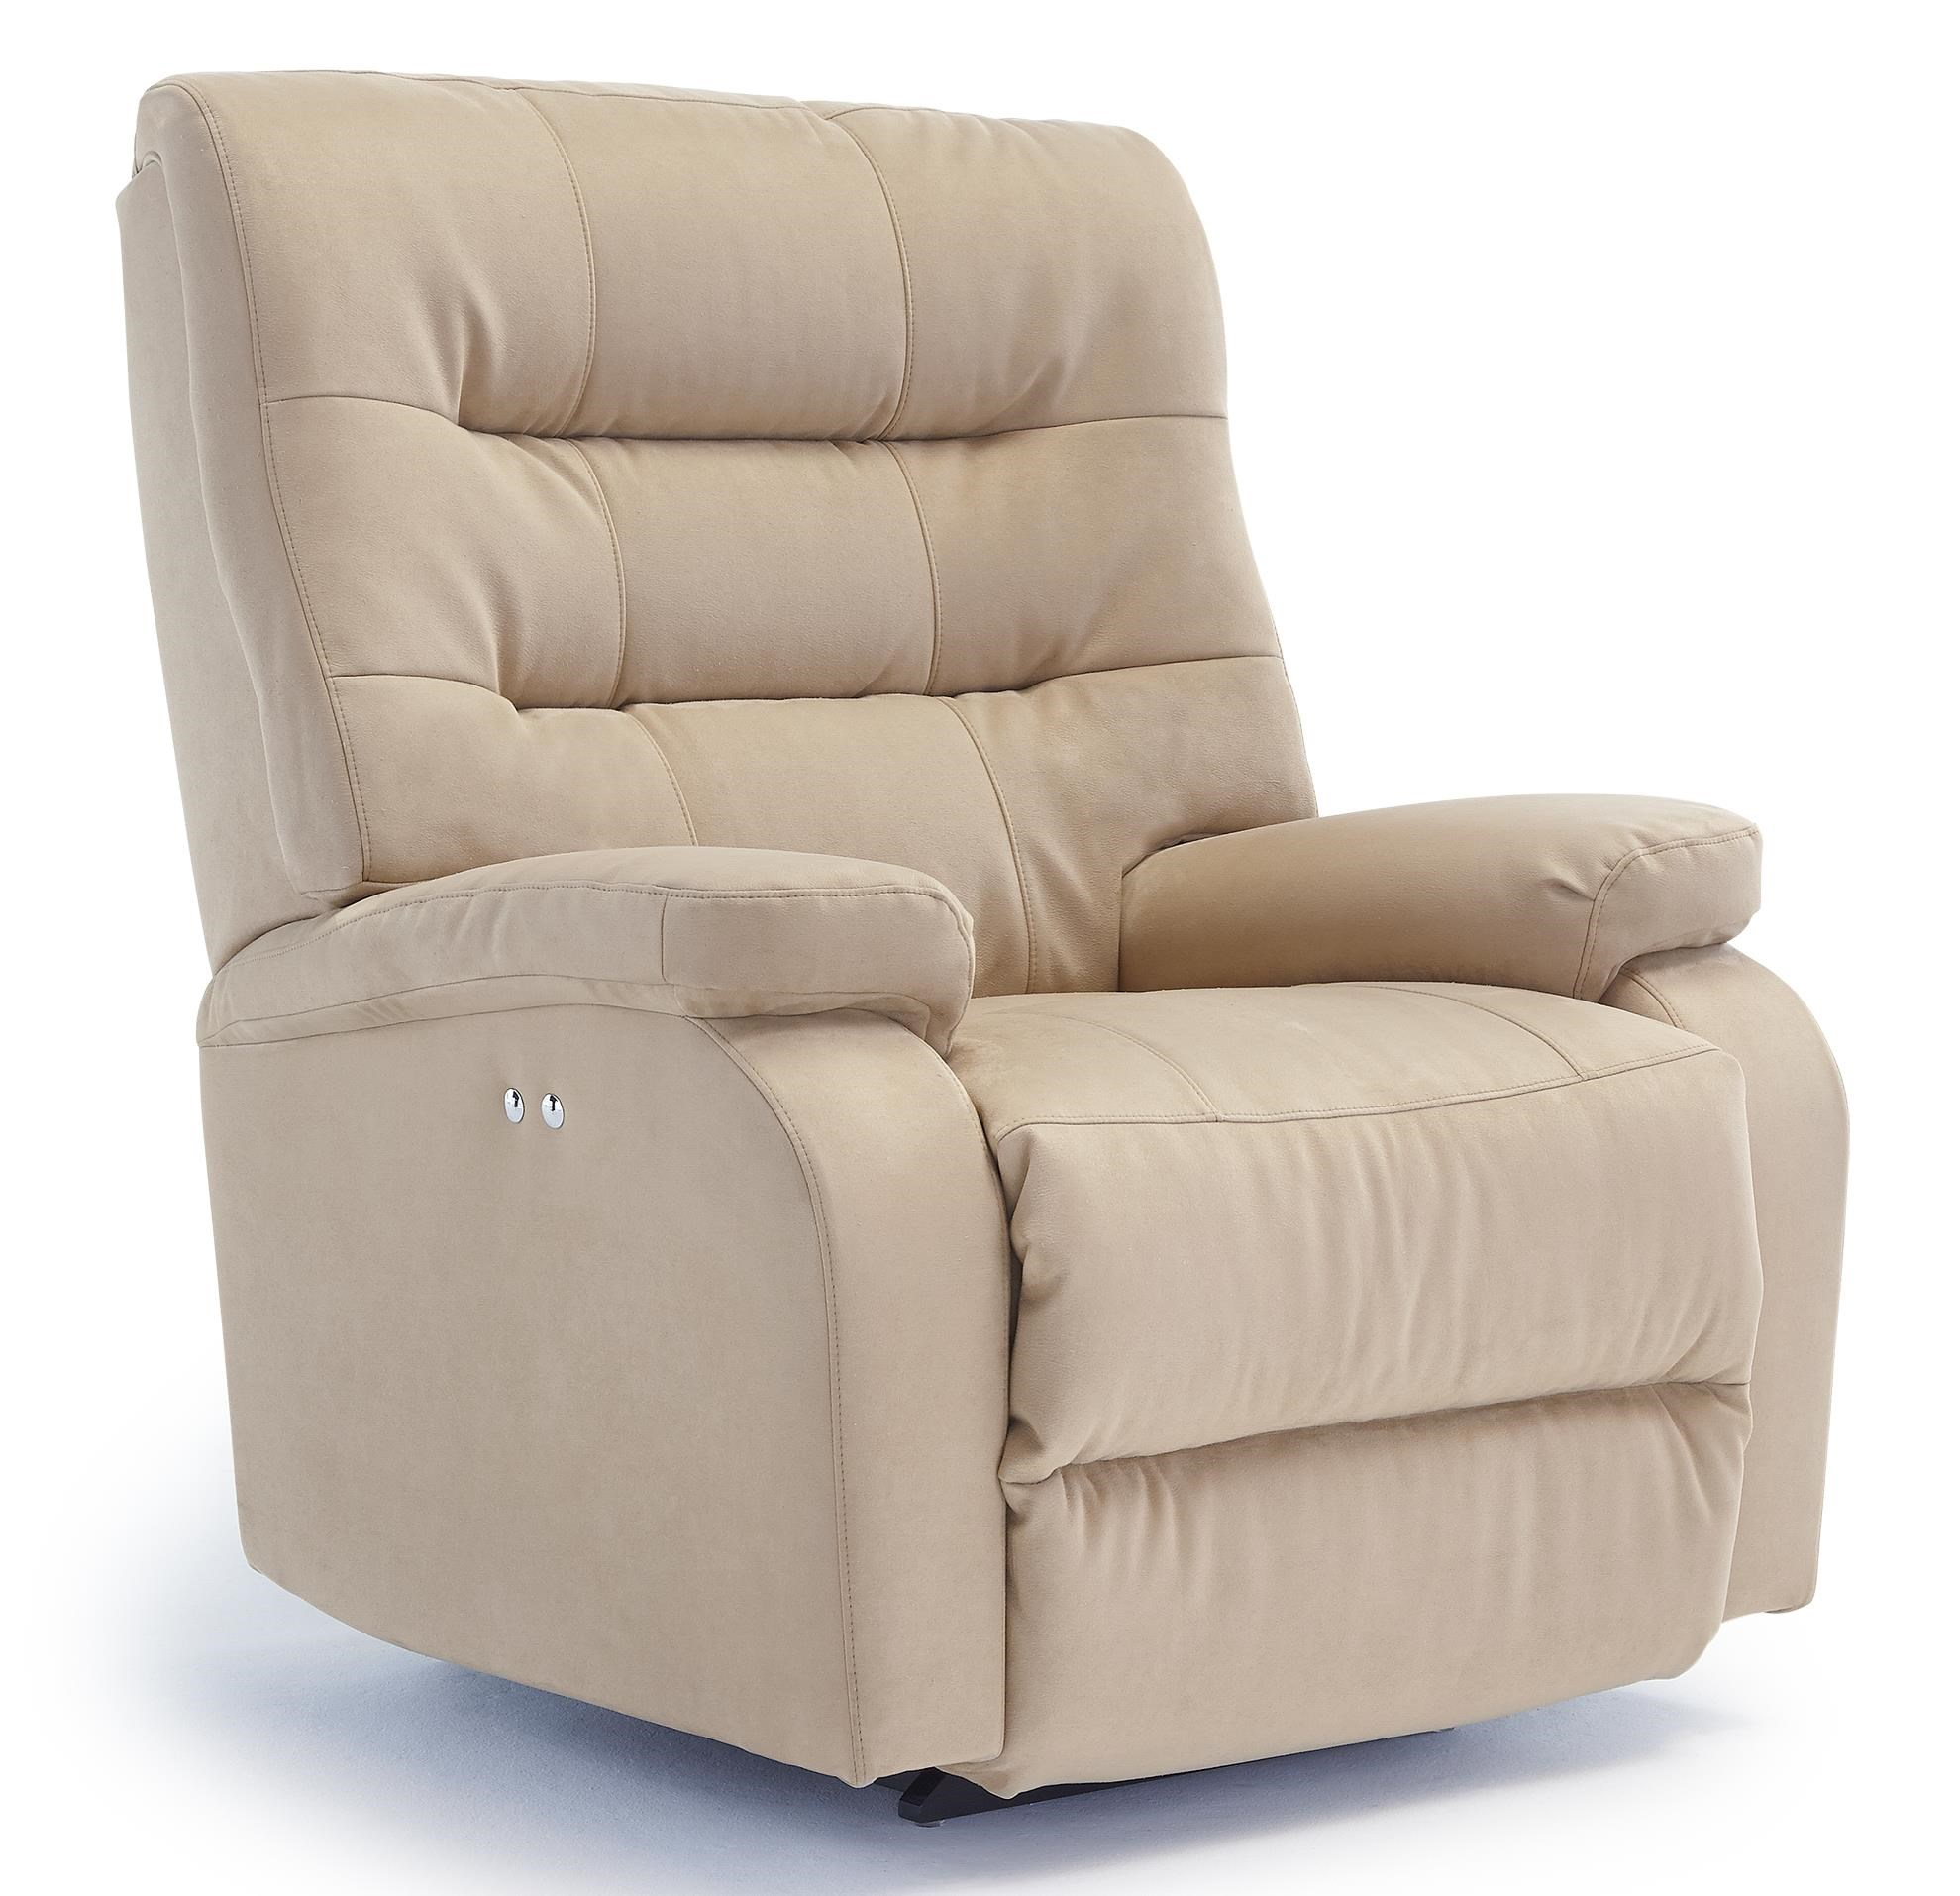 Recliners - Medium 8N39 Liam Swivel Rocker Recliner by Best Home Furnishings  sc 1 st  John V Schultz Furniture & Best Home Furnishings Recliners - Medium Liam Swivel Rocker ... islam-shia.org